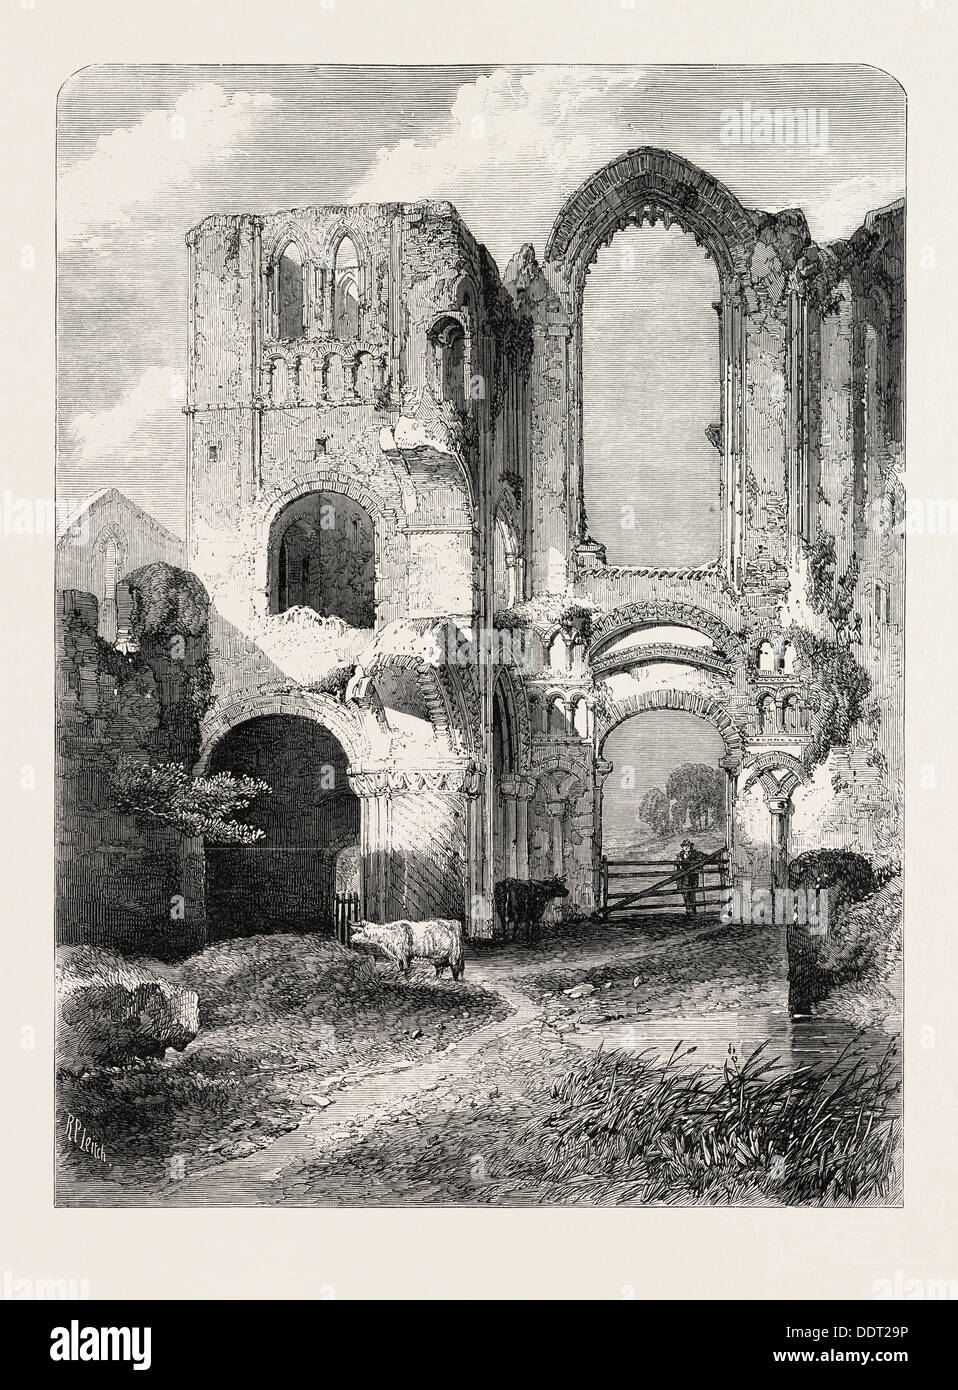 RUINS OF CASTLE ACRE PRIORY, NORFOLK, BY R.P. LEITCH. FROM THE ROYAL ACADEMY EXHIBITION, 1860 engraving - Stock Image